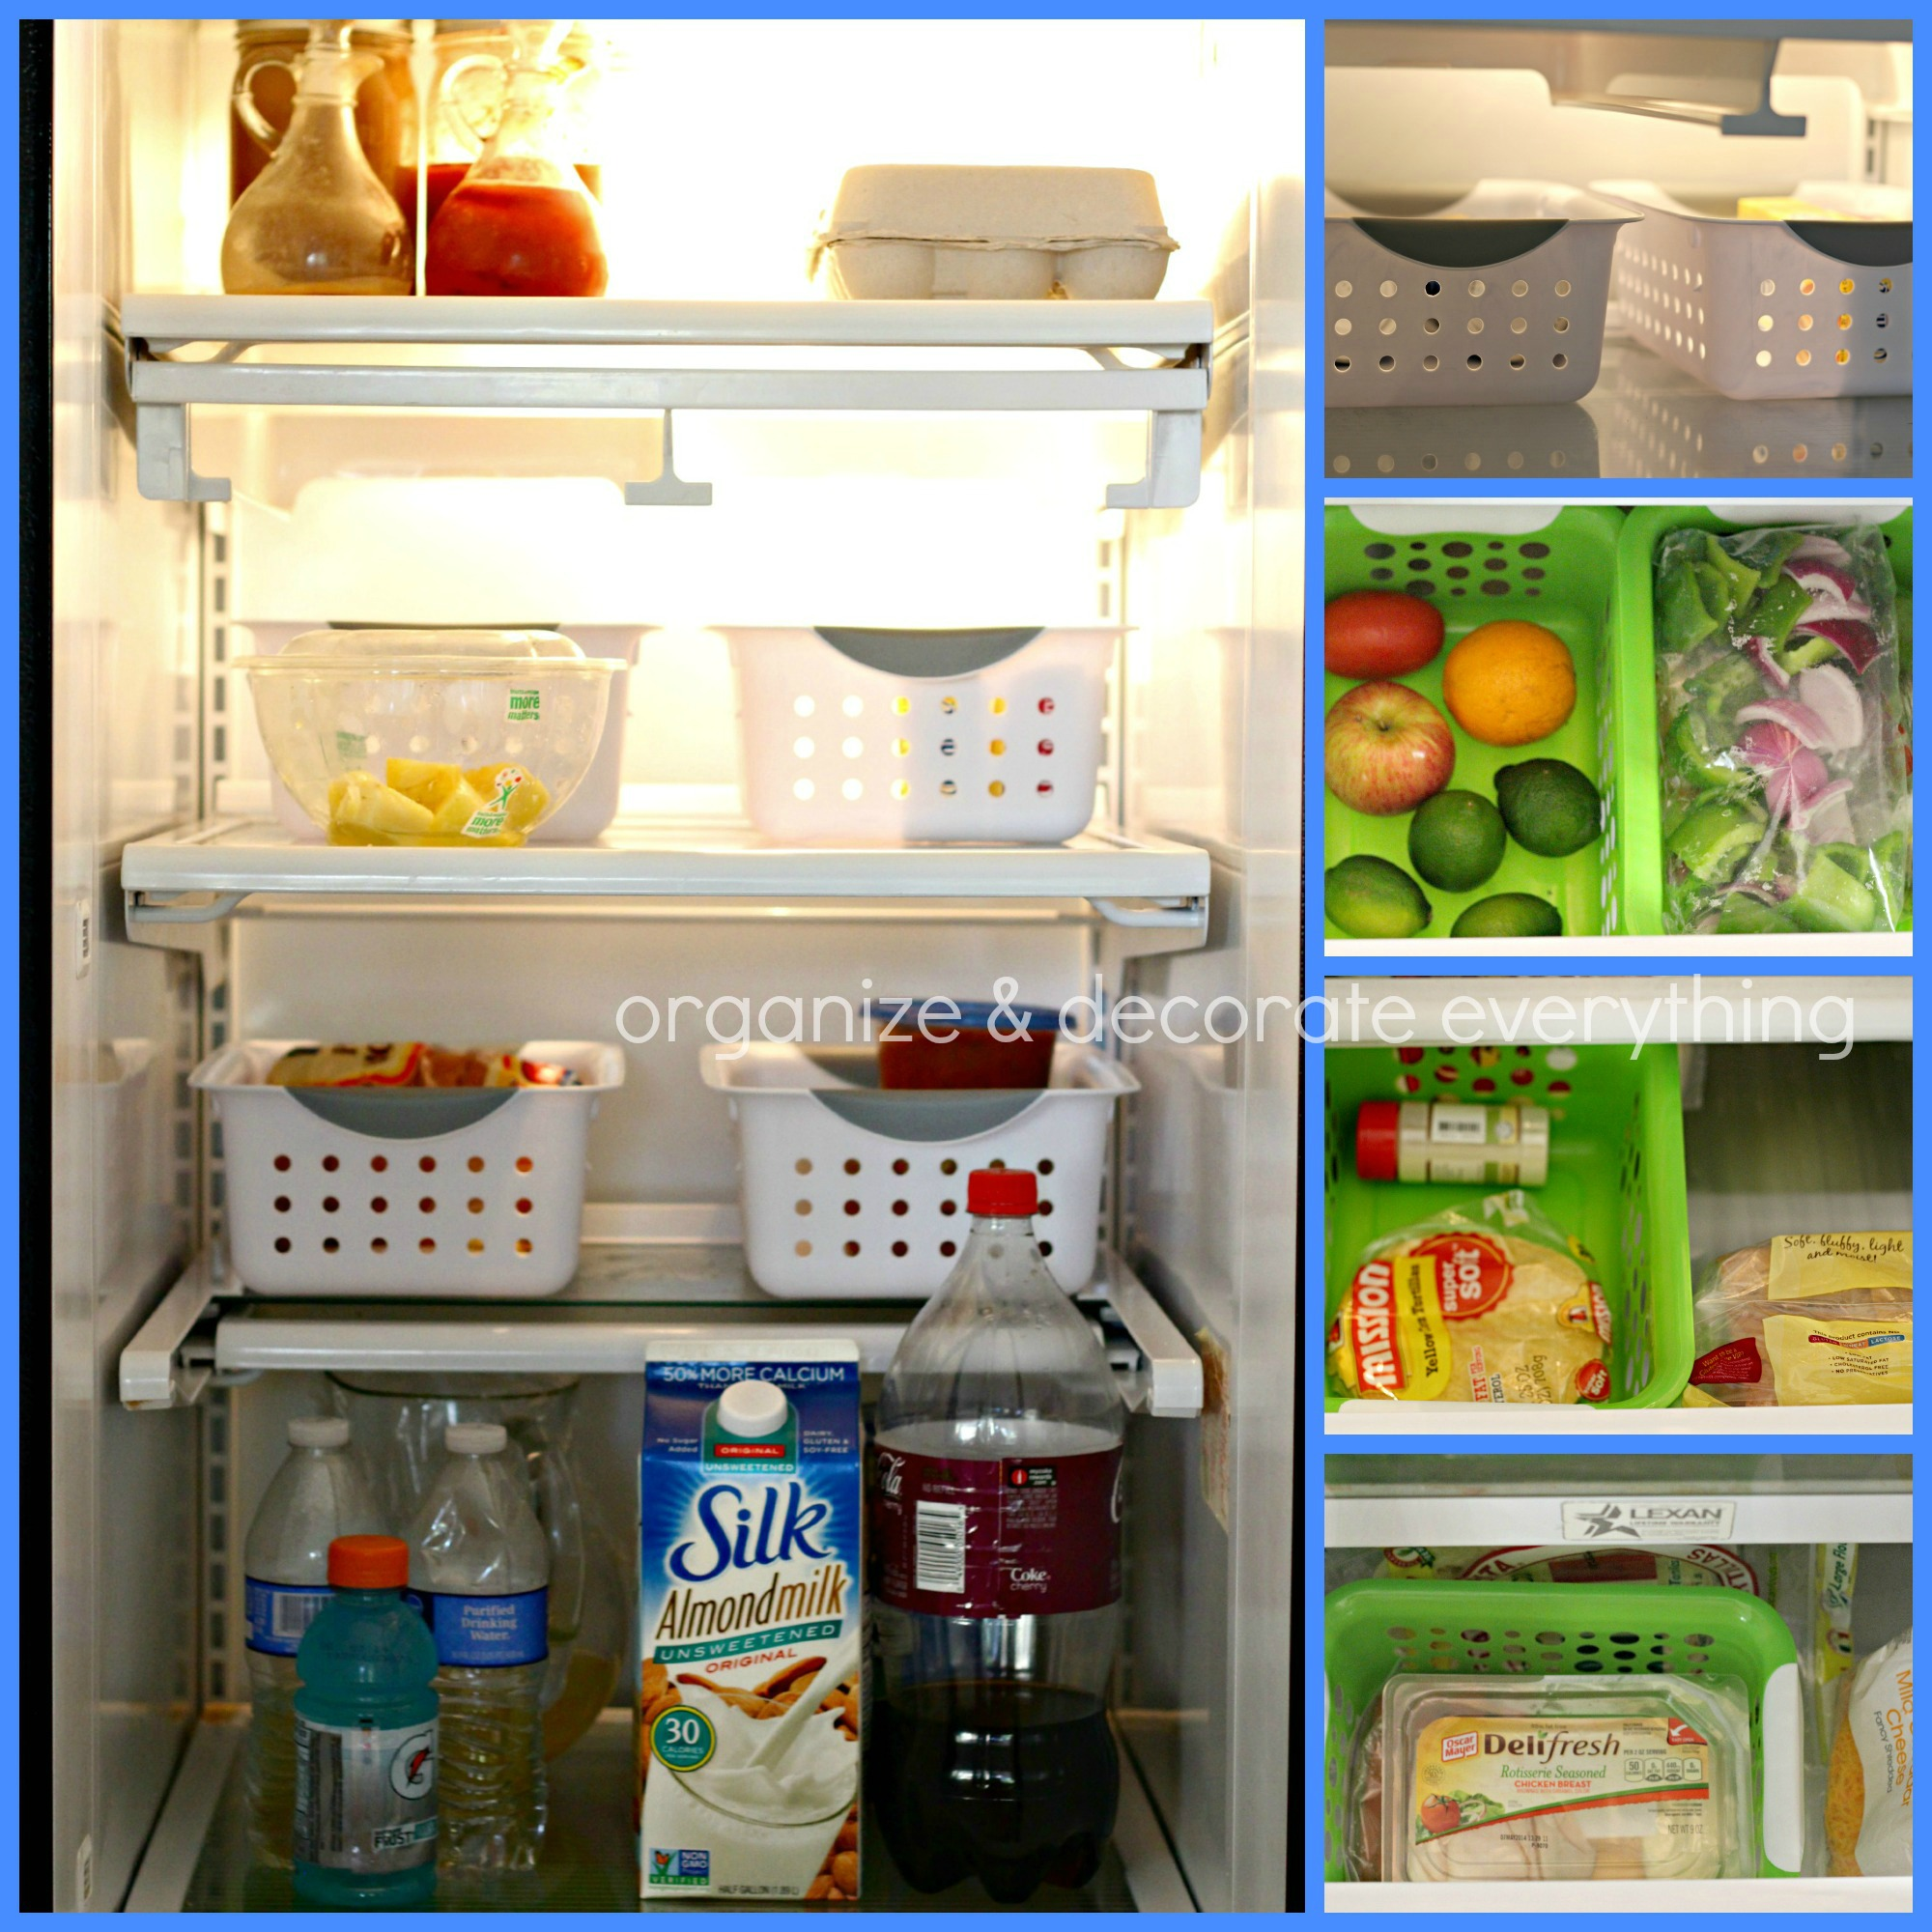 organize the kitchen with dollar general - organize and decorate